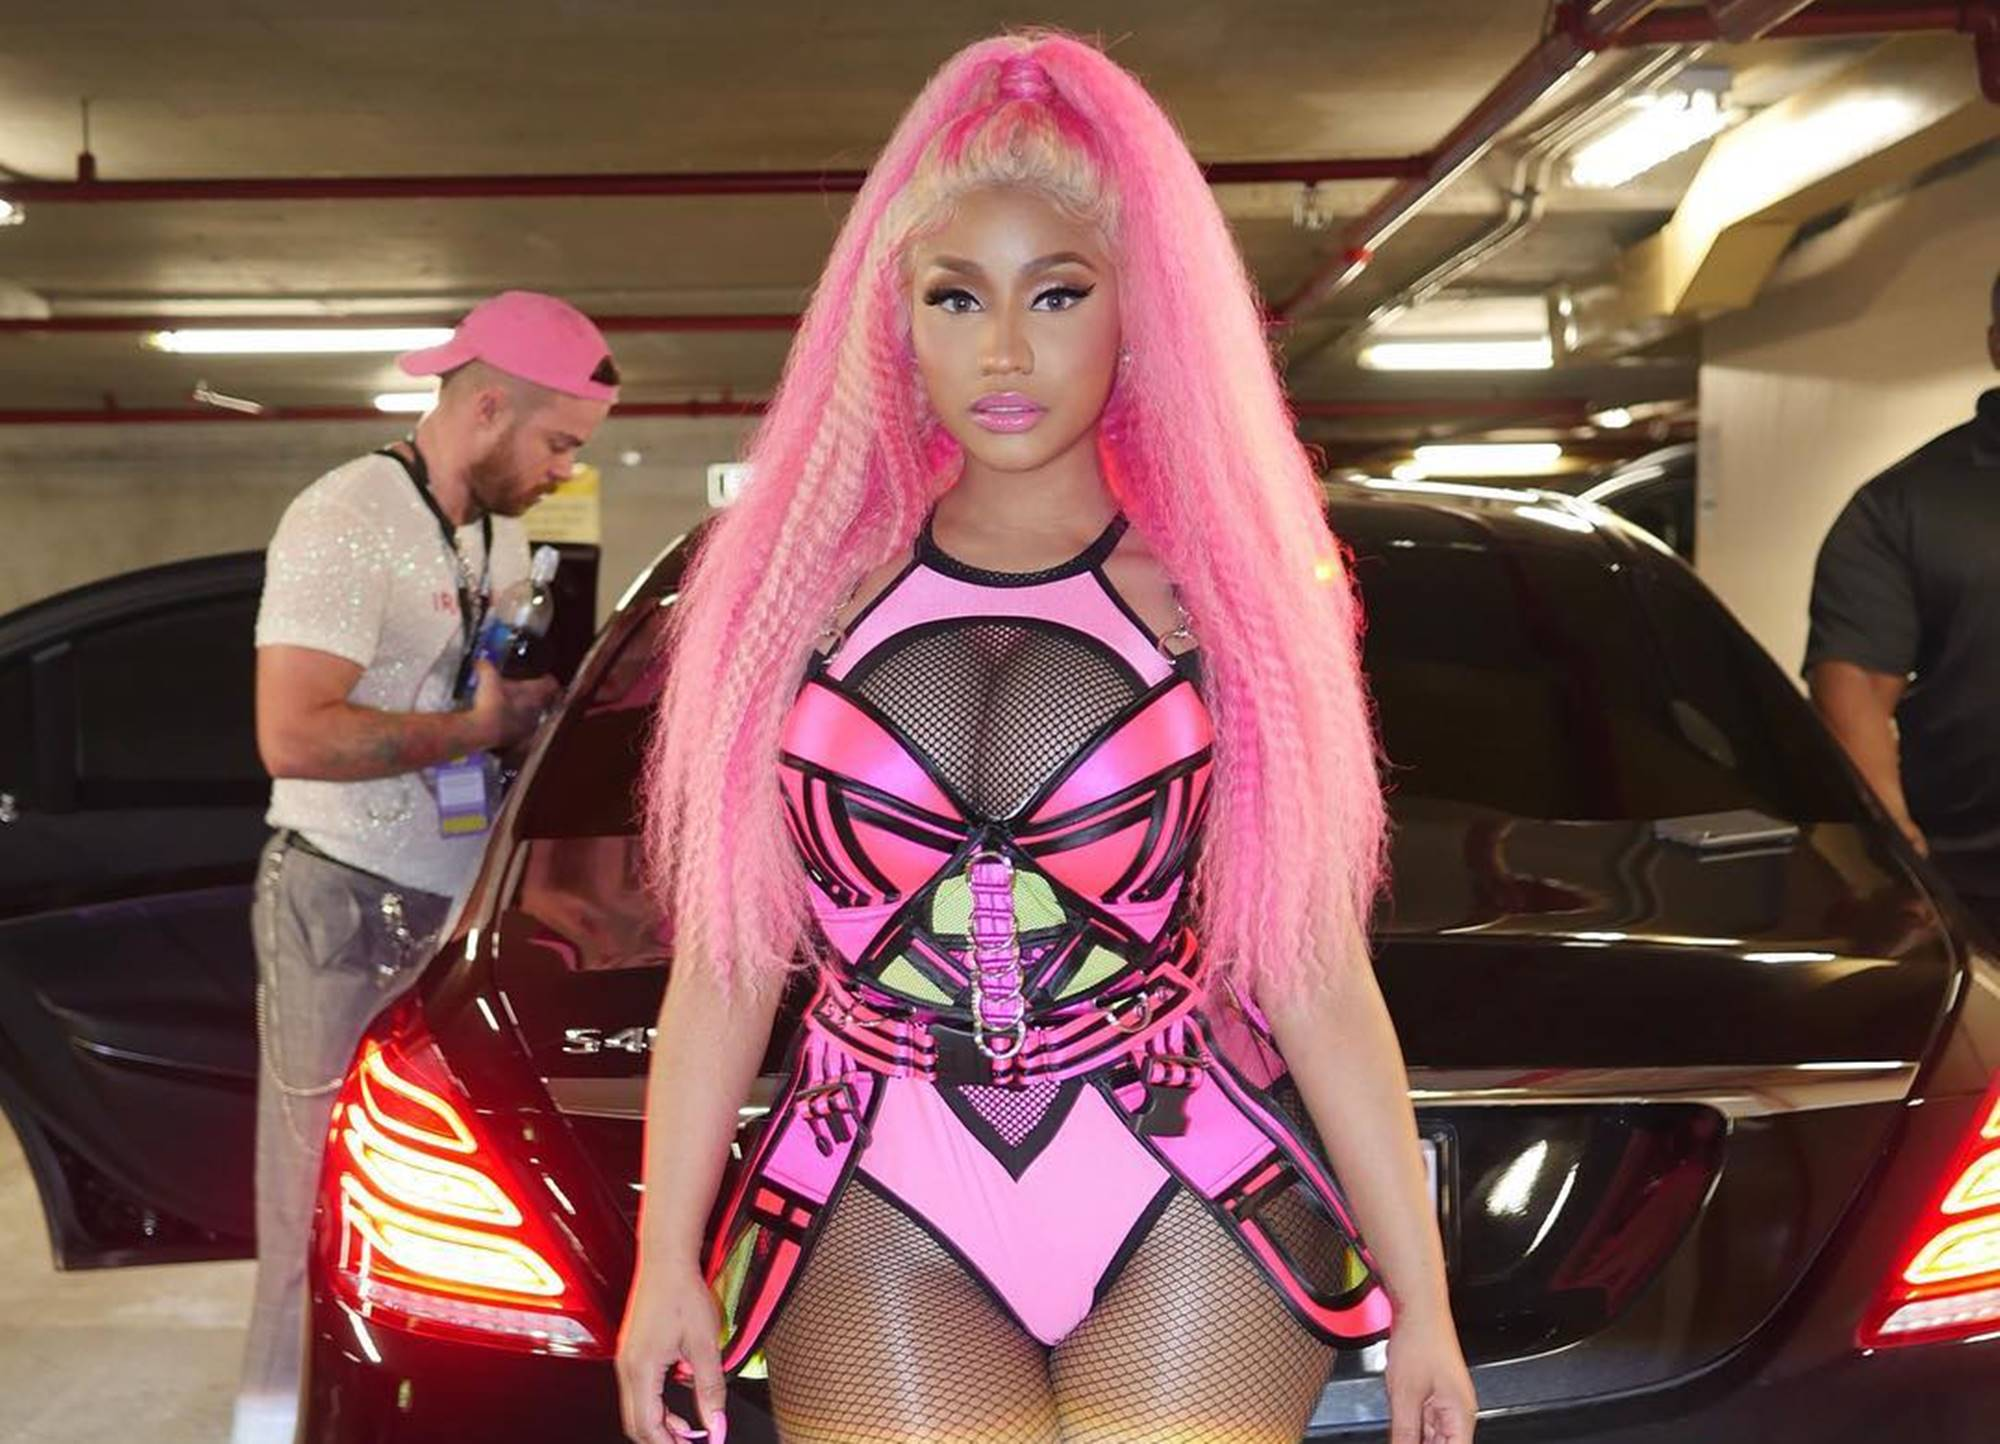 """nicki-minaj-is-a-real-life-barbie-doll-in-new-pictures-as-romance-with-kenneth-petty-continues-to-blossom-lil-waynes-friend-is-completely-smitten-with-her-beau"""